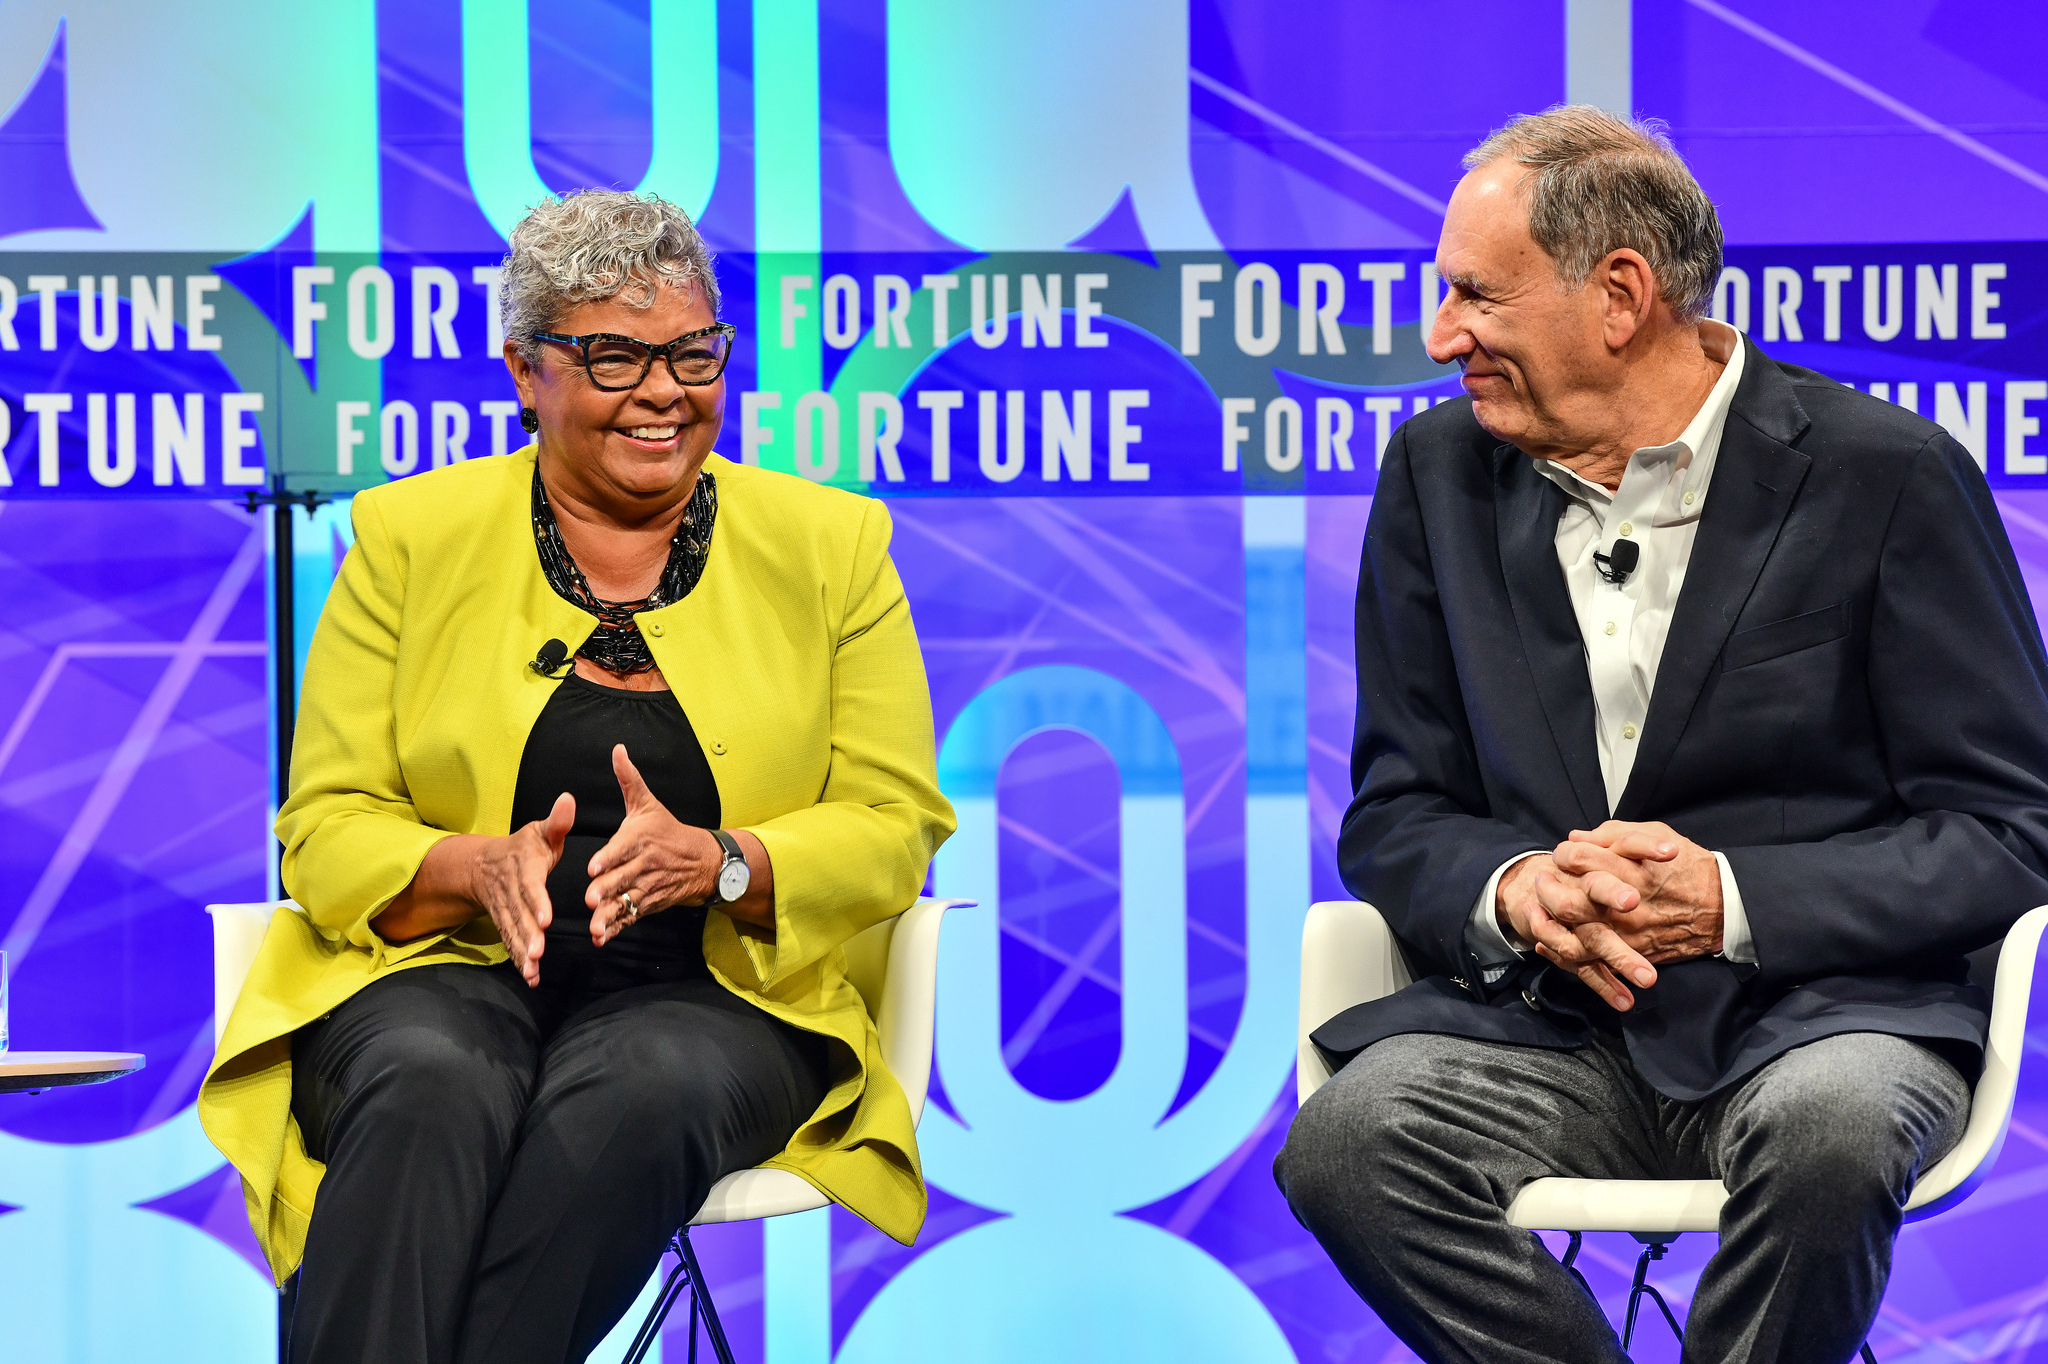 Freda Lewis-Hall of Pfizer and Toby Cosgrove of the Cleveland Clinic and Google Cloud at the 2019 Fortune Brainstorm Health conference in San Diego.